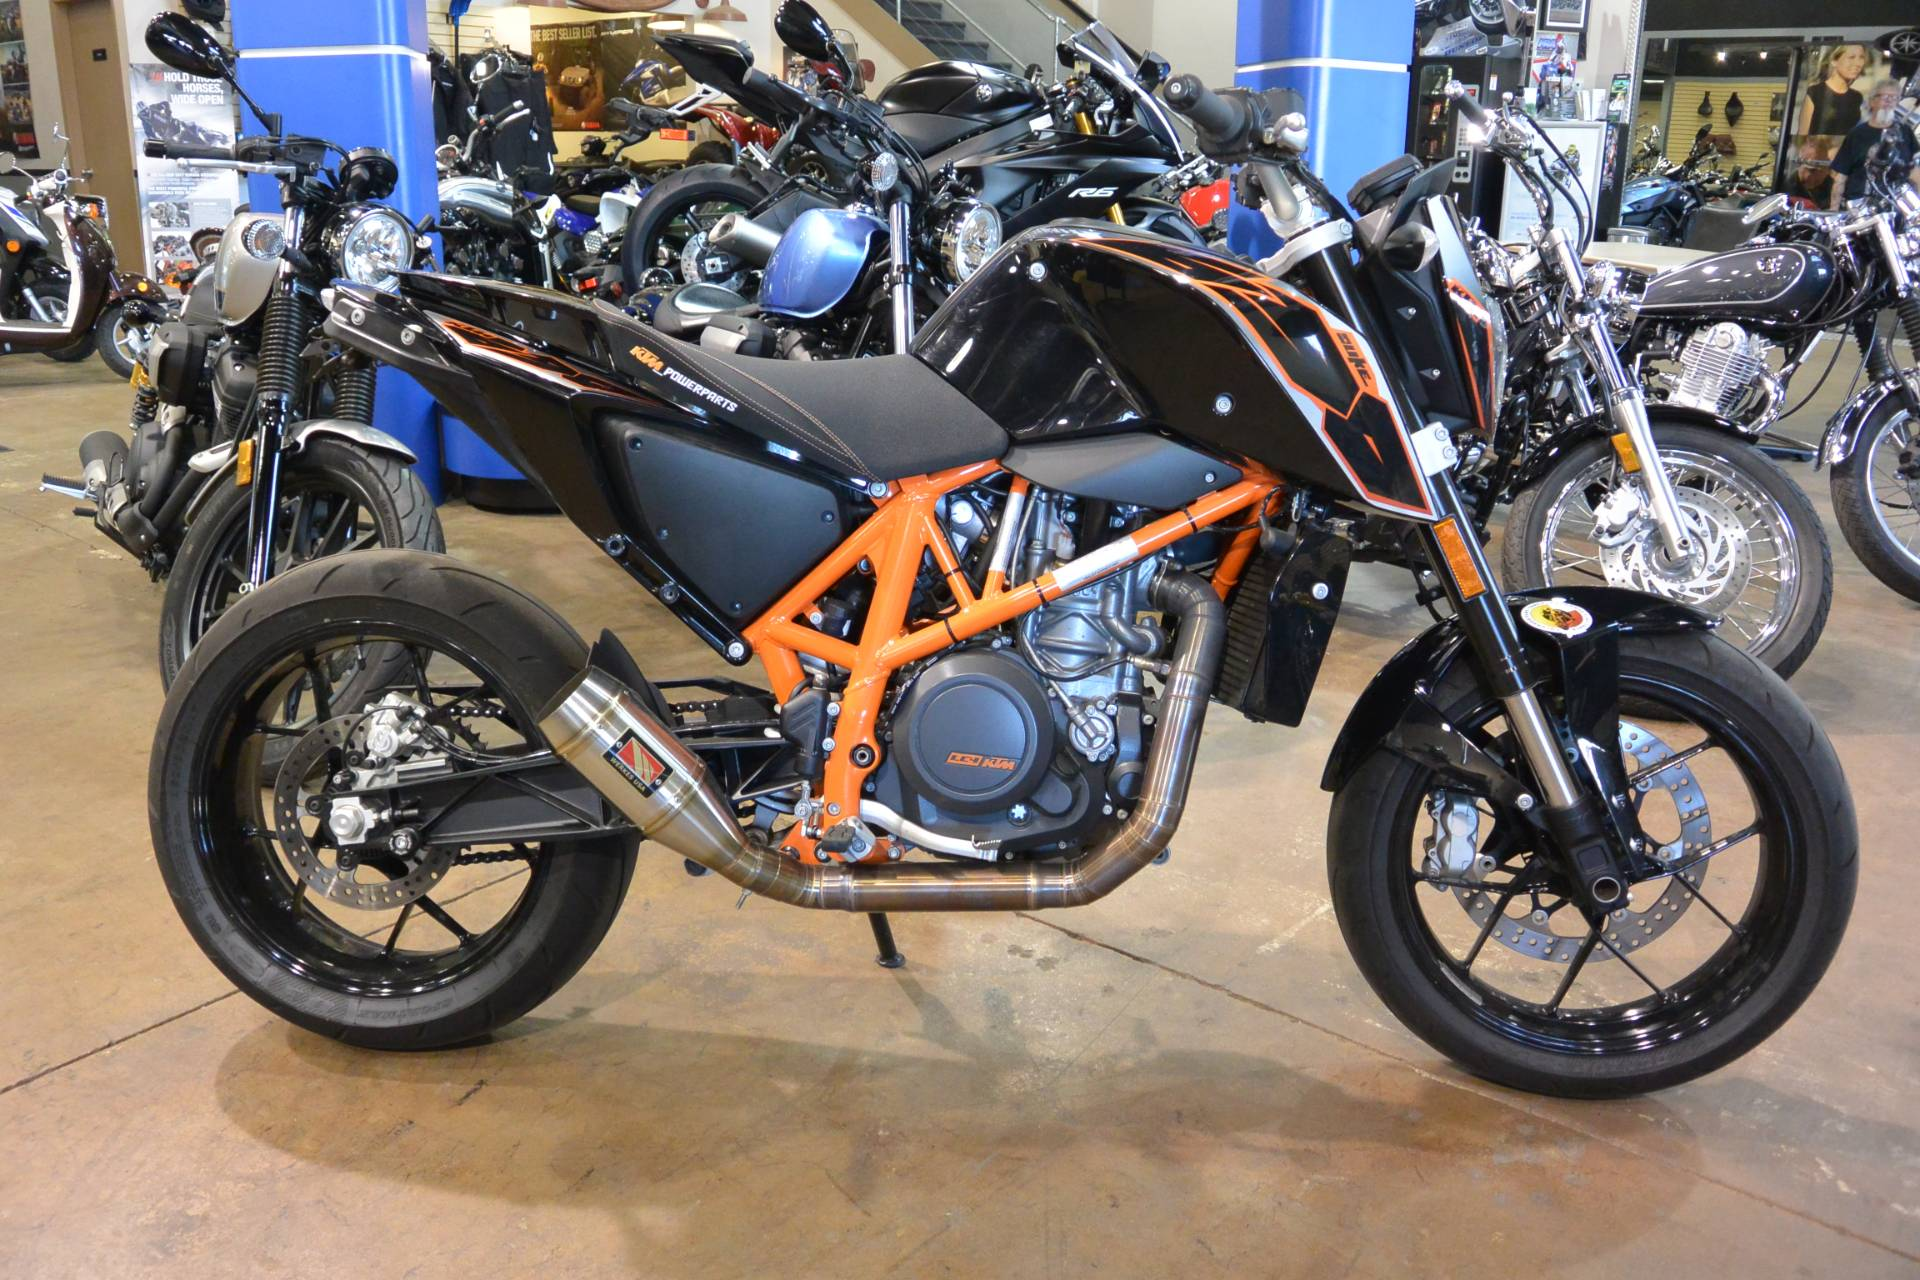 2015 KTM Duke in Denver, Colorado